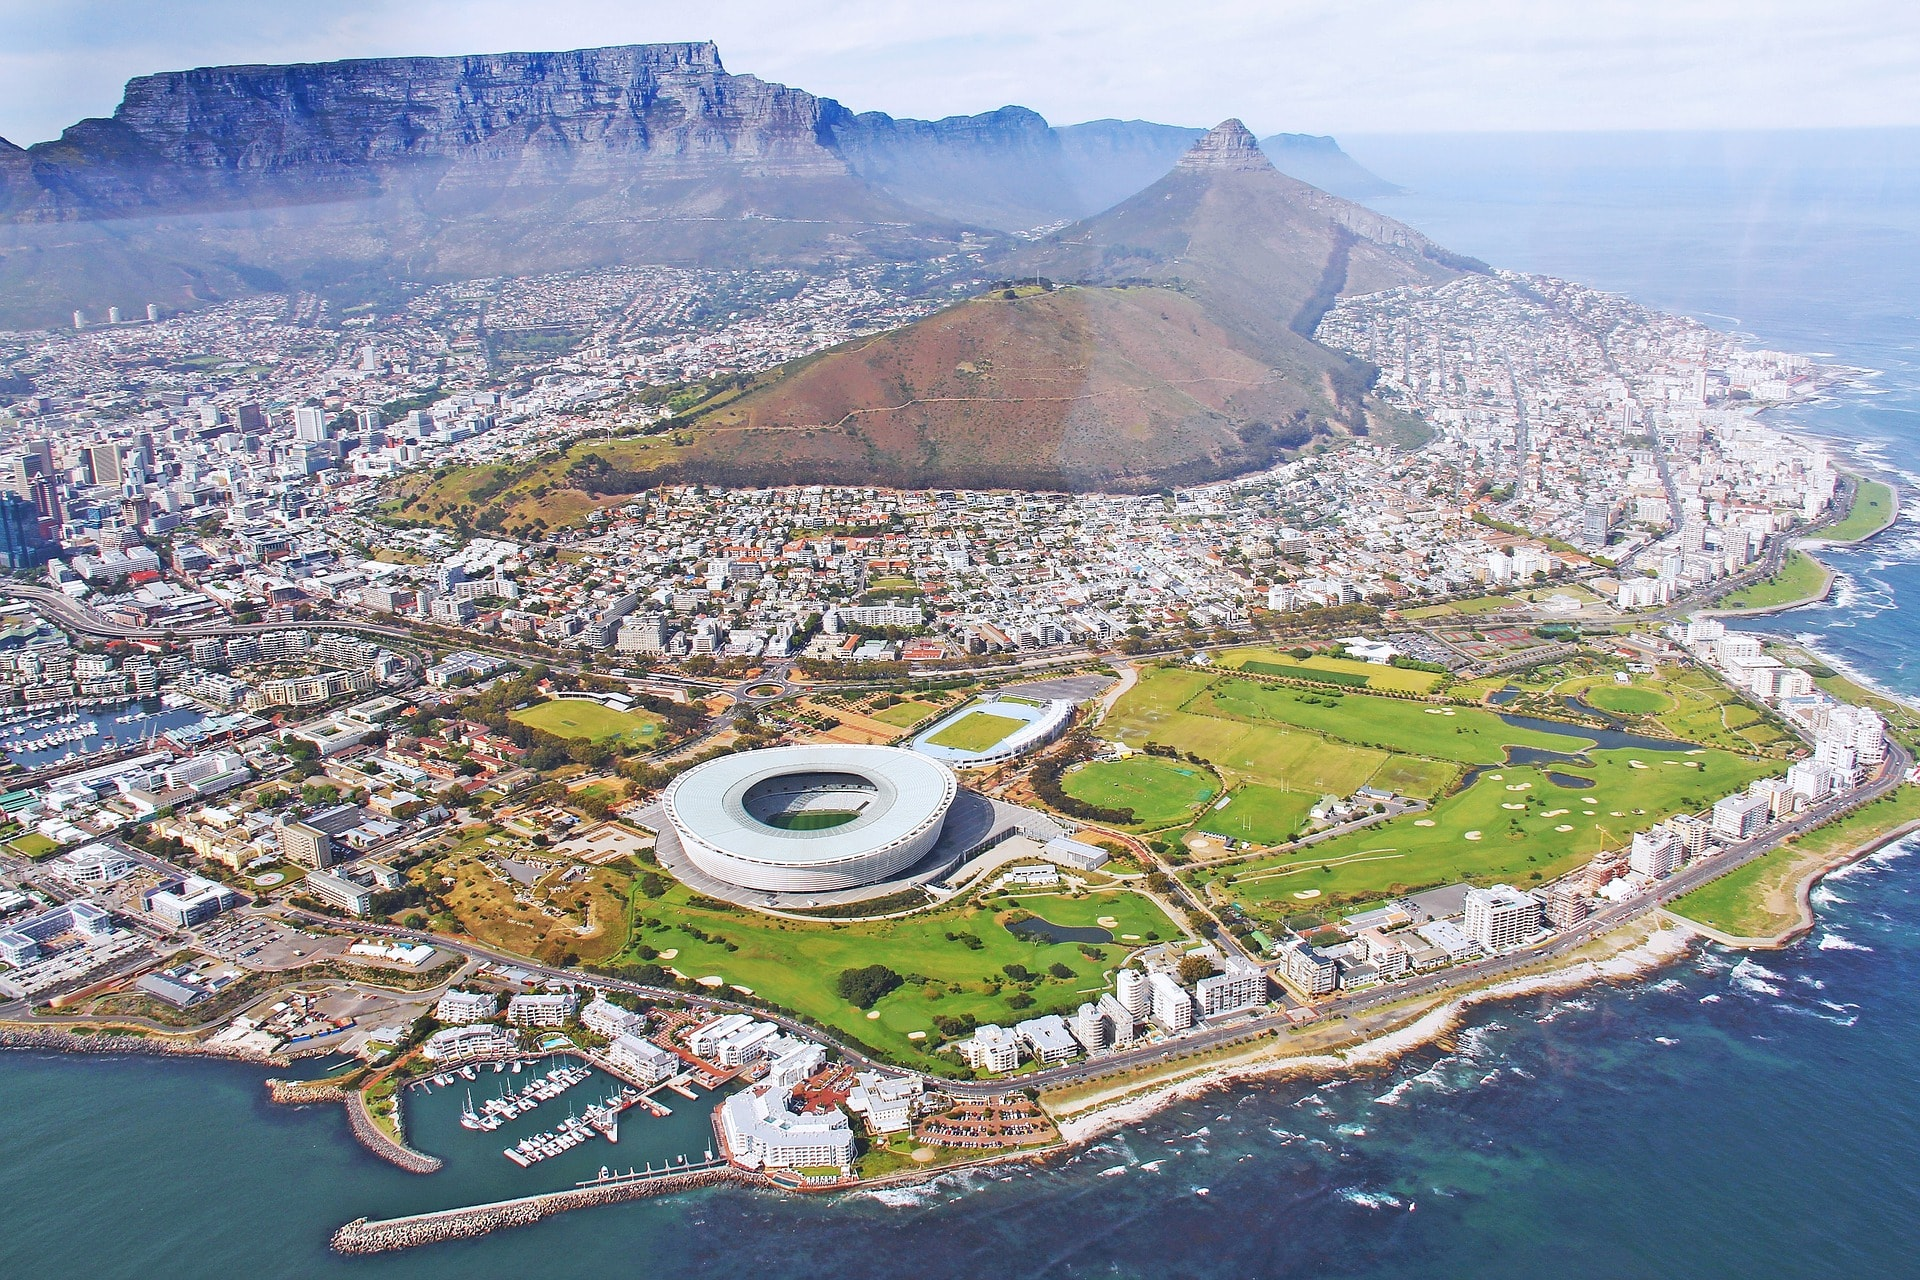 Cape Town, South Africa (best shopping city)